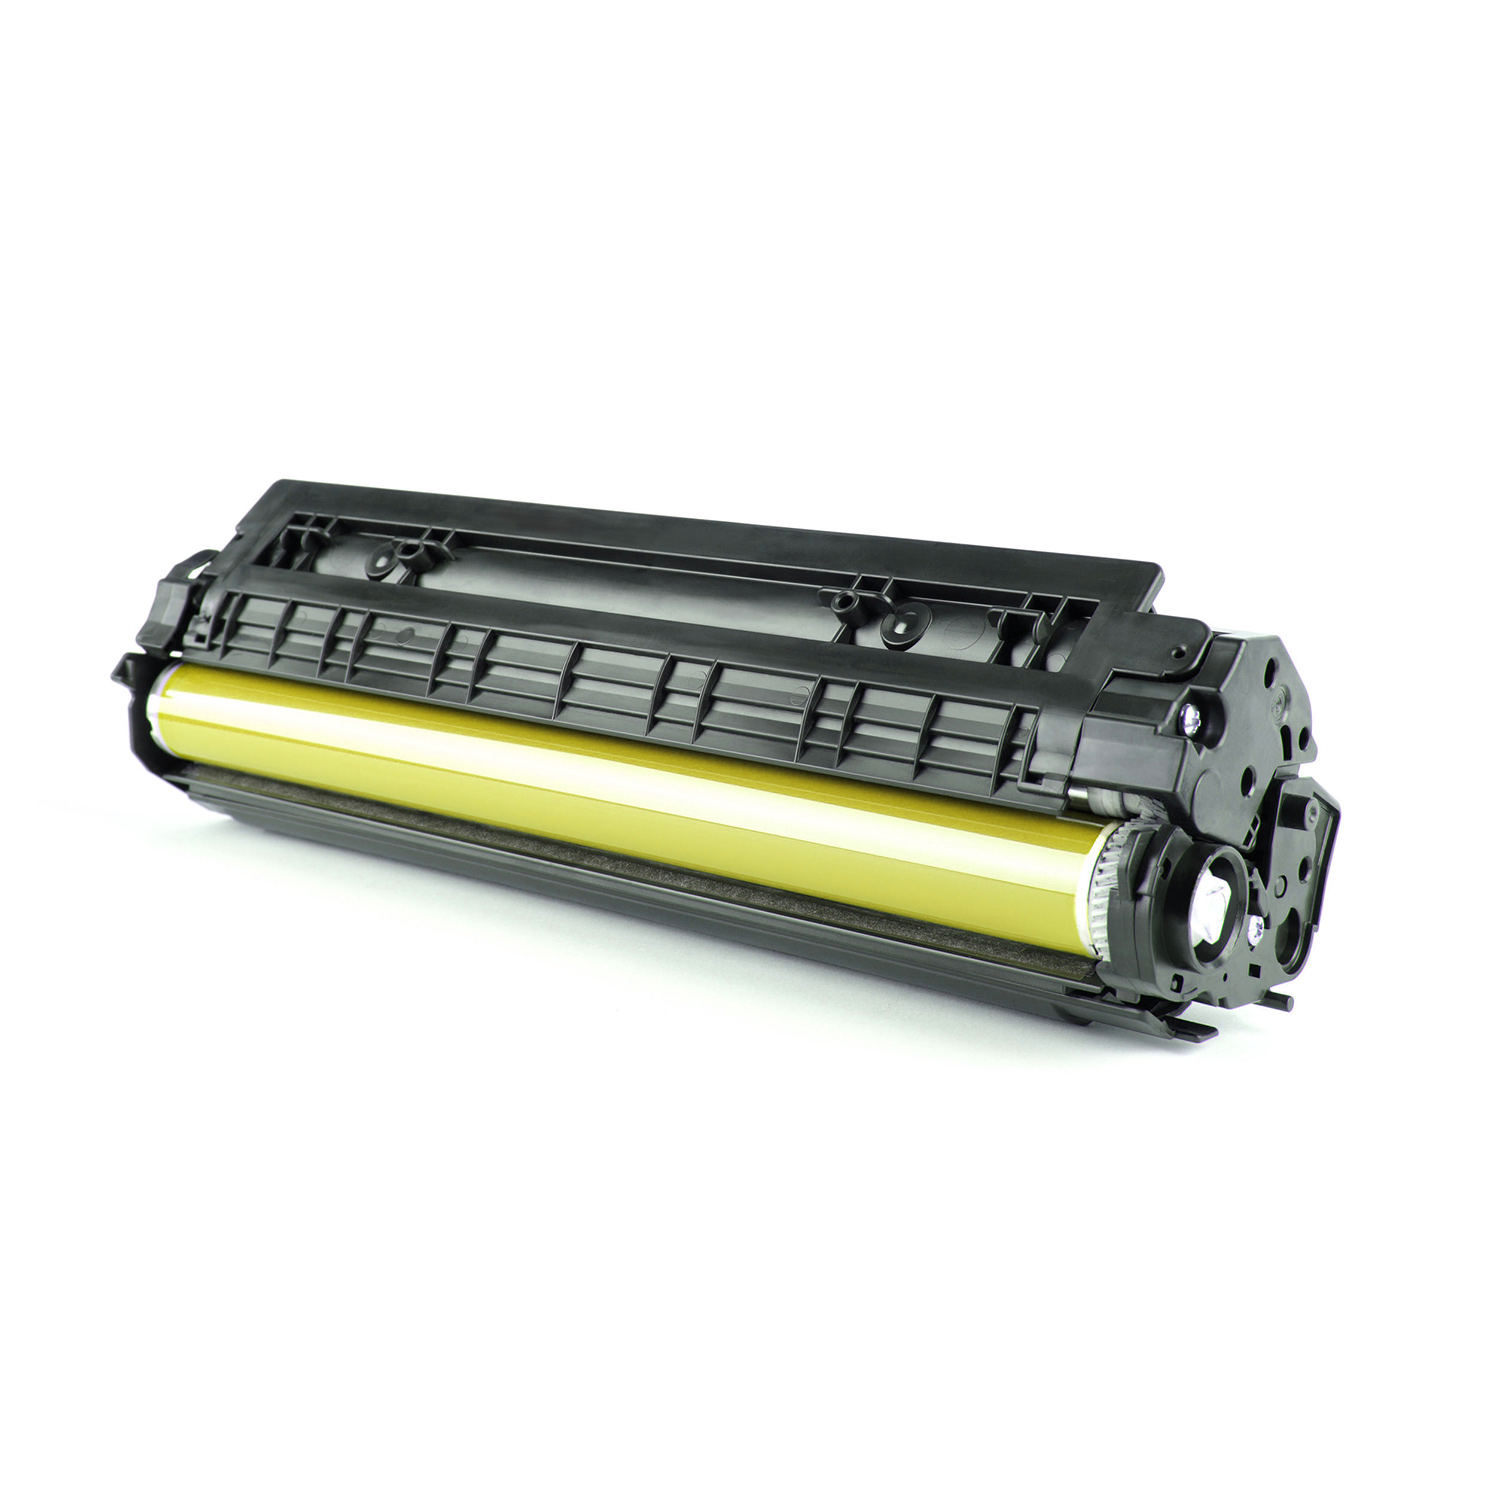 Toner Compatible Xerox 1x Yellow 006R01450 / DC240